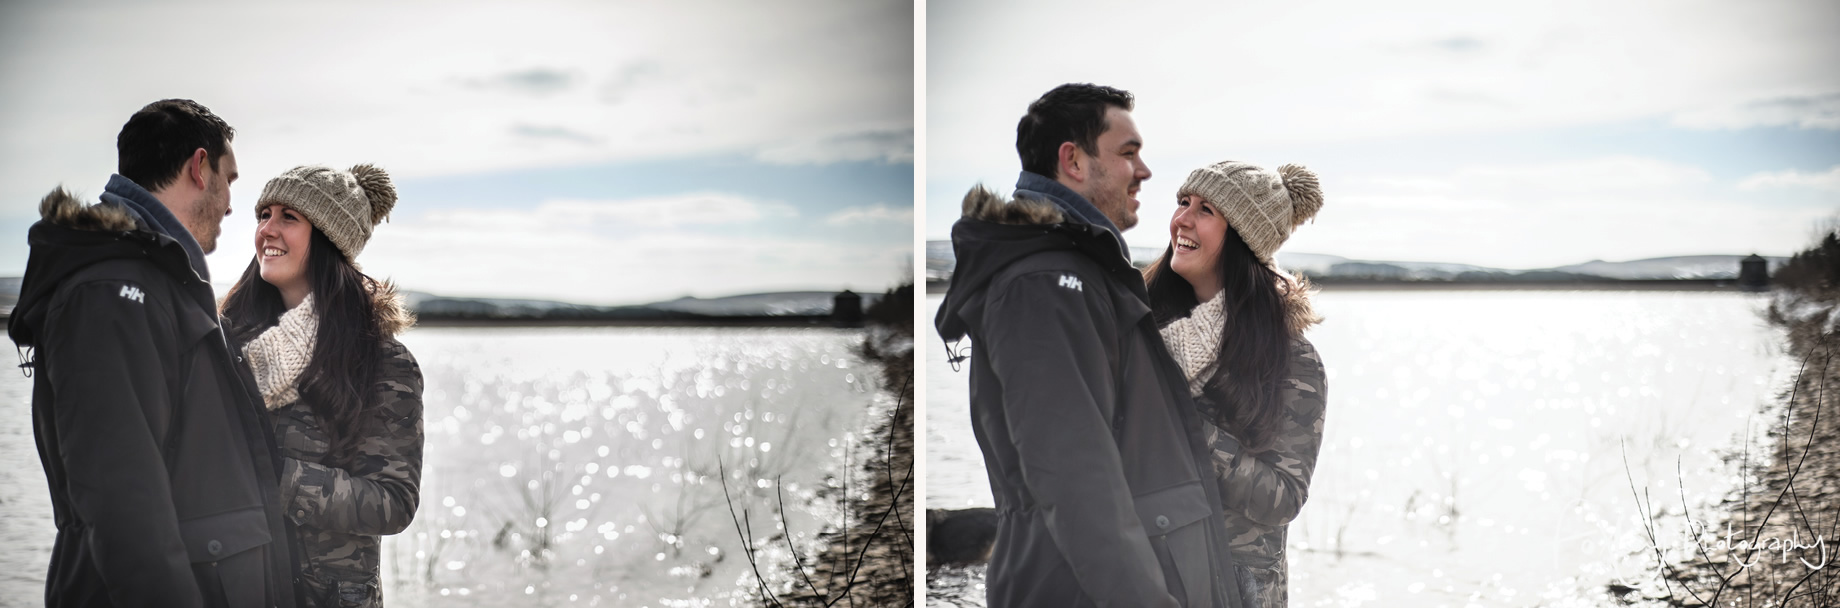 Kelly-And-Neil-Pre-Wedding-Shoot-019